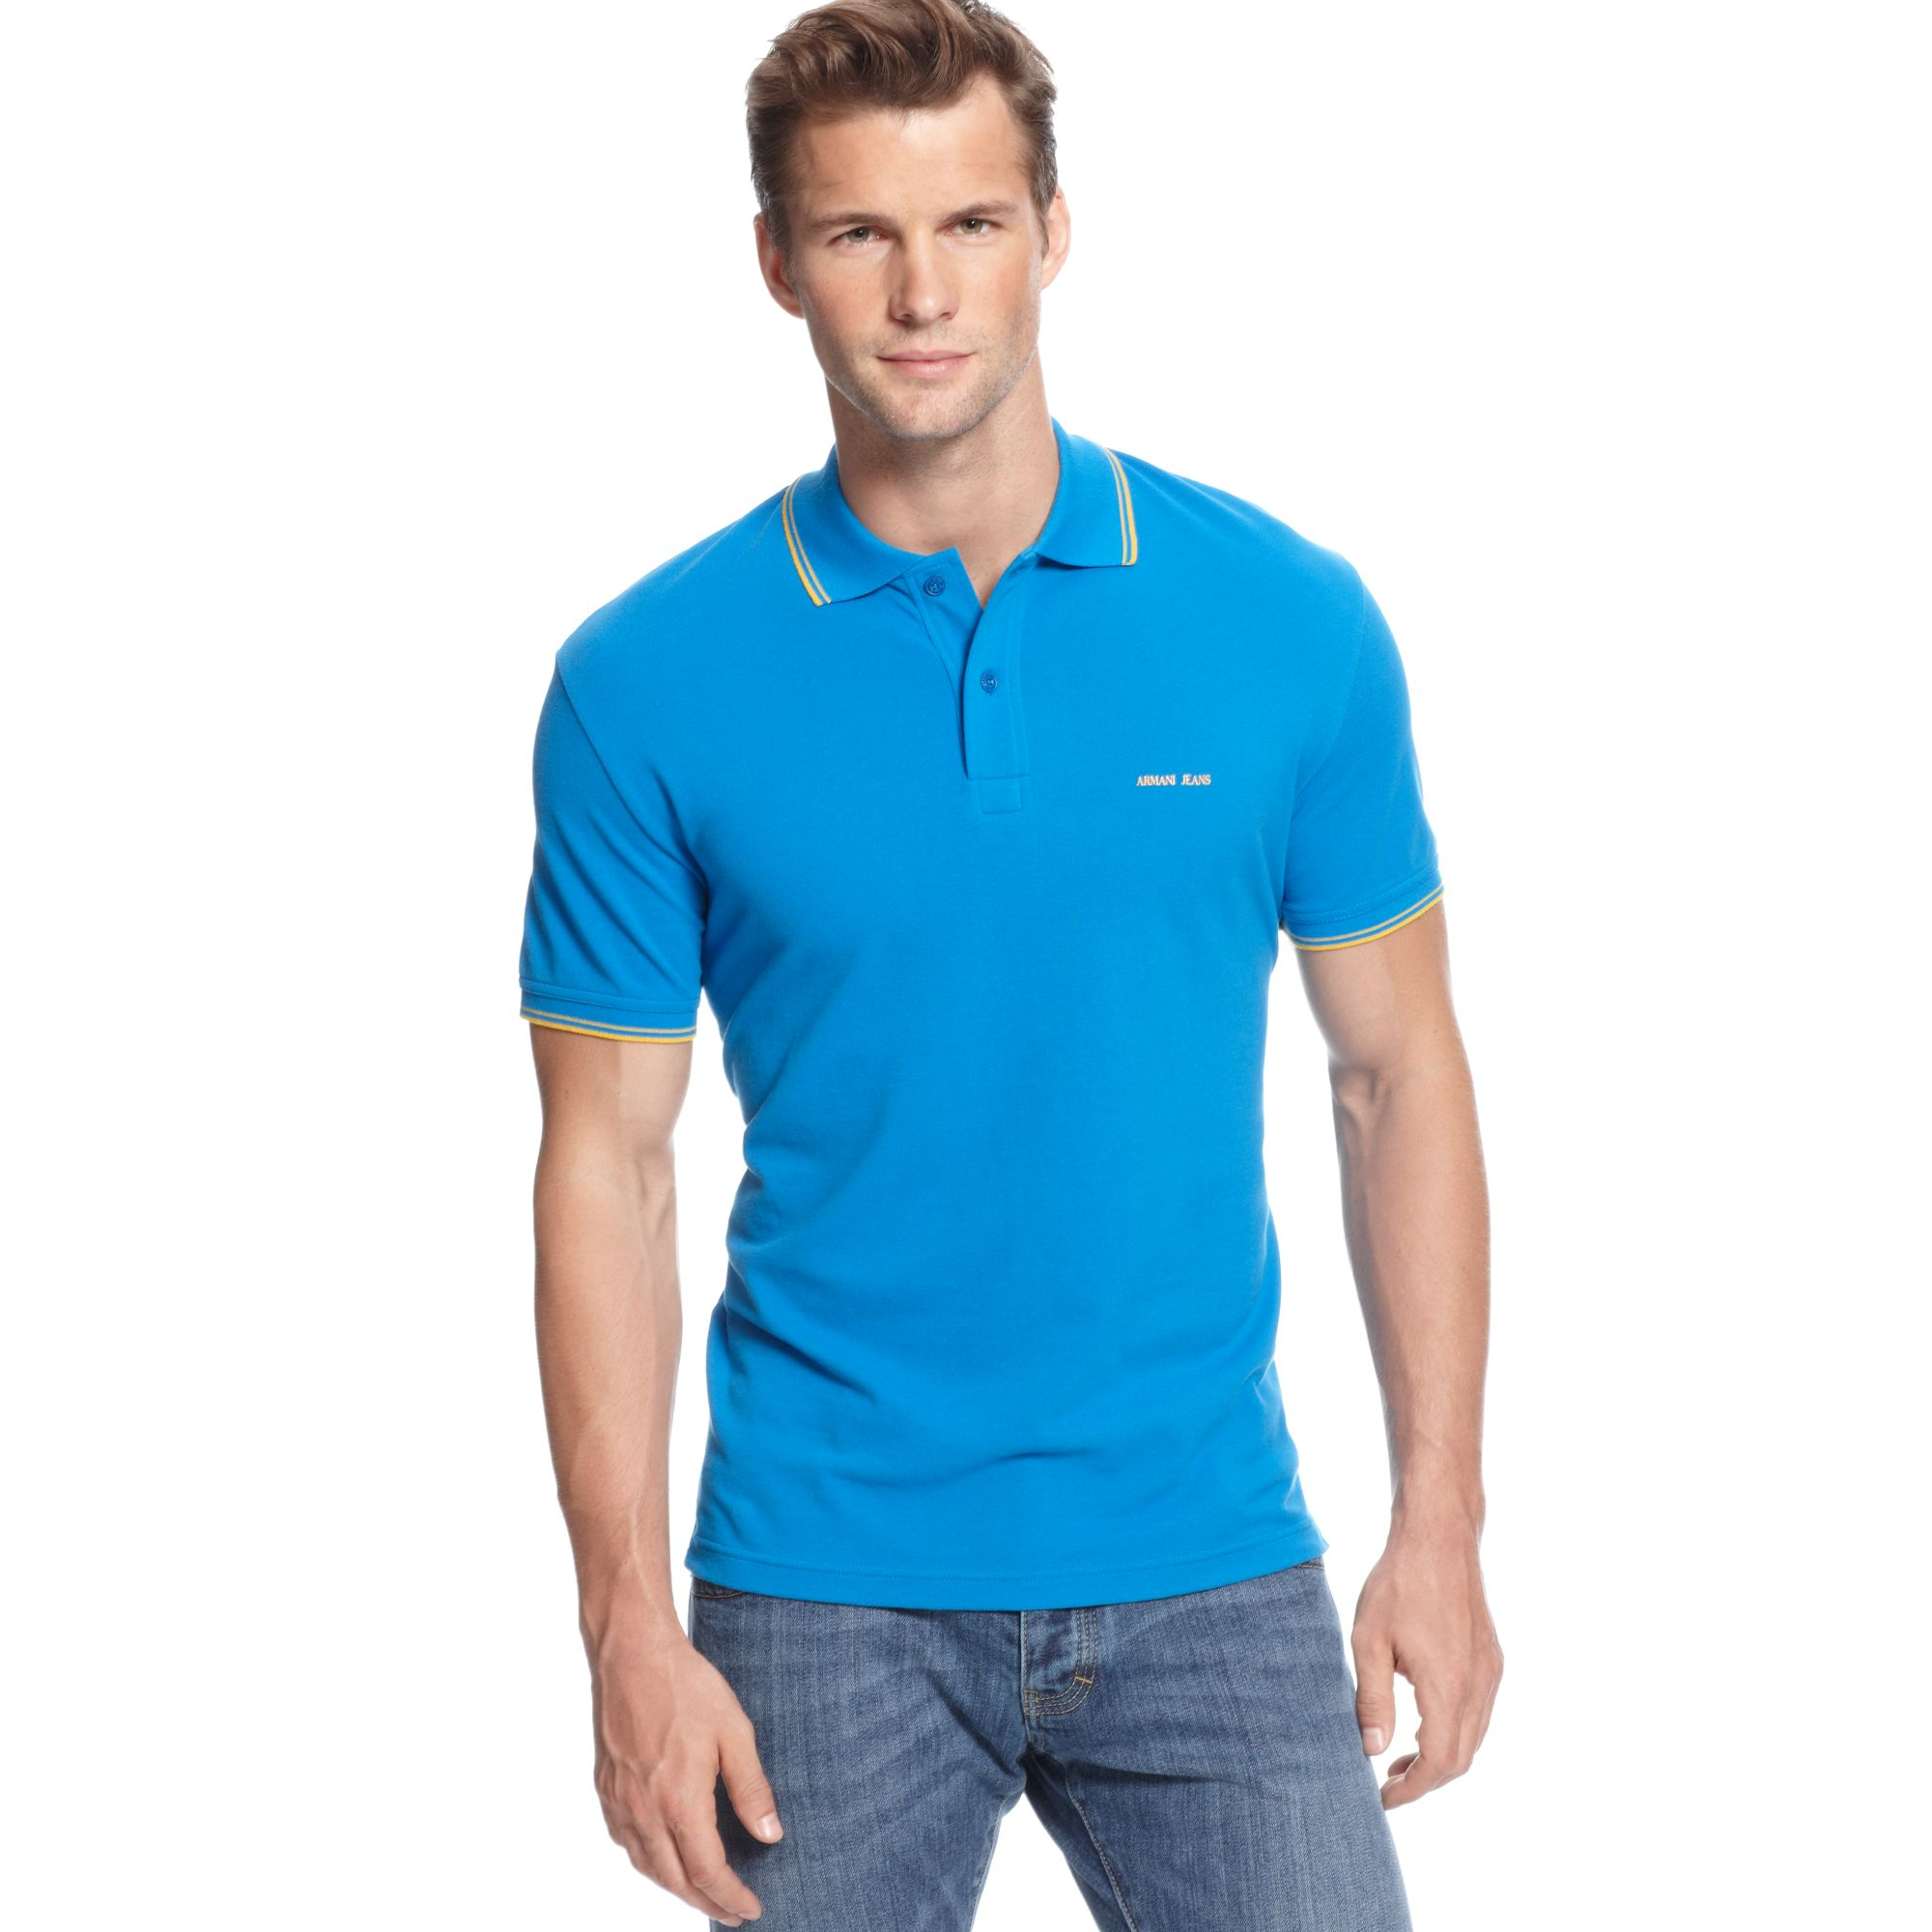 armani jeans tipped pique polo shirt in blue for men lyst